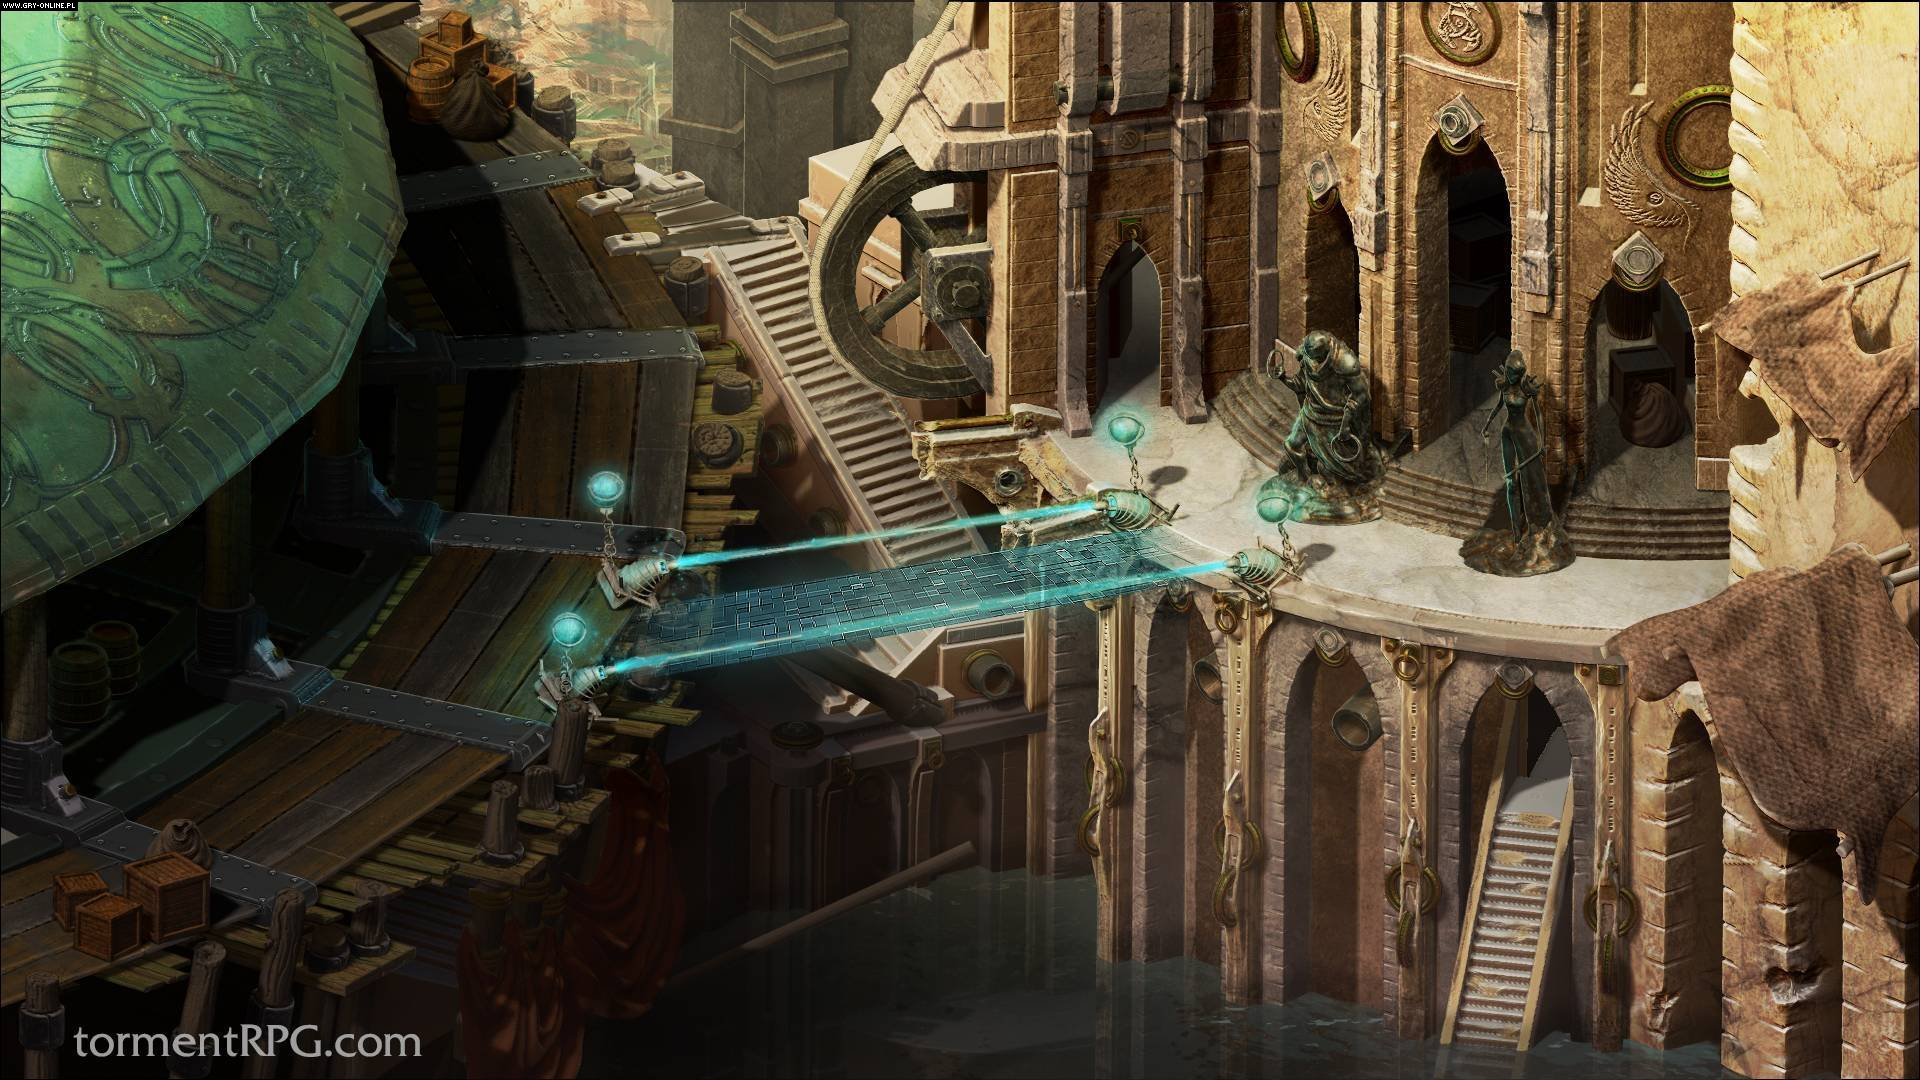 Torment: Tides of Numenera PC Games Image 25/28, inXile entertainment, Techland